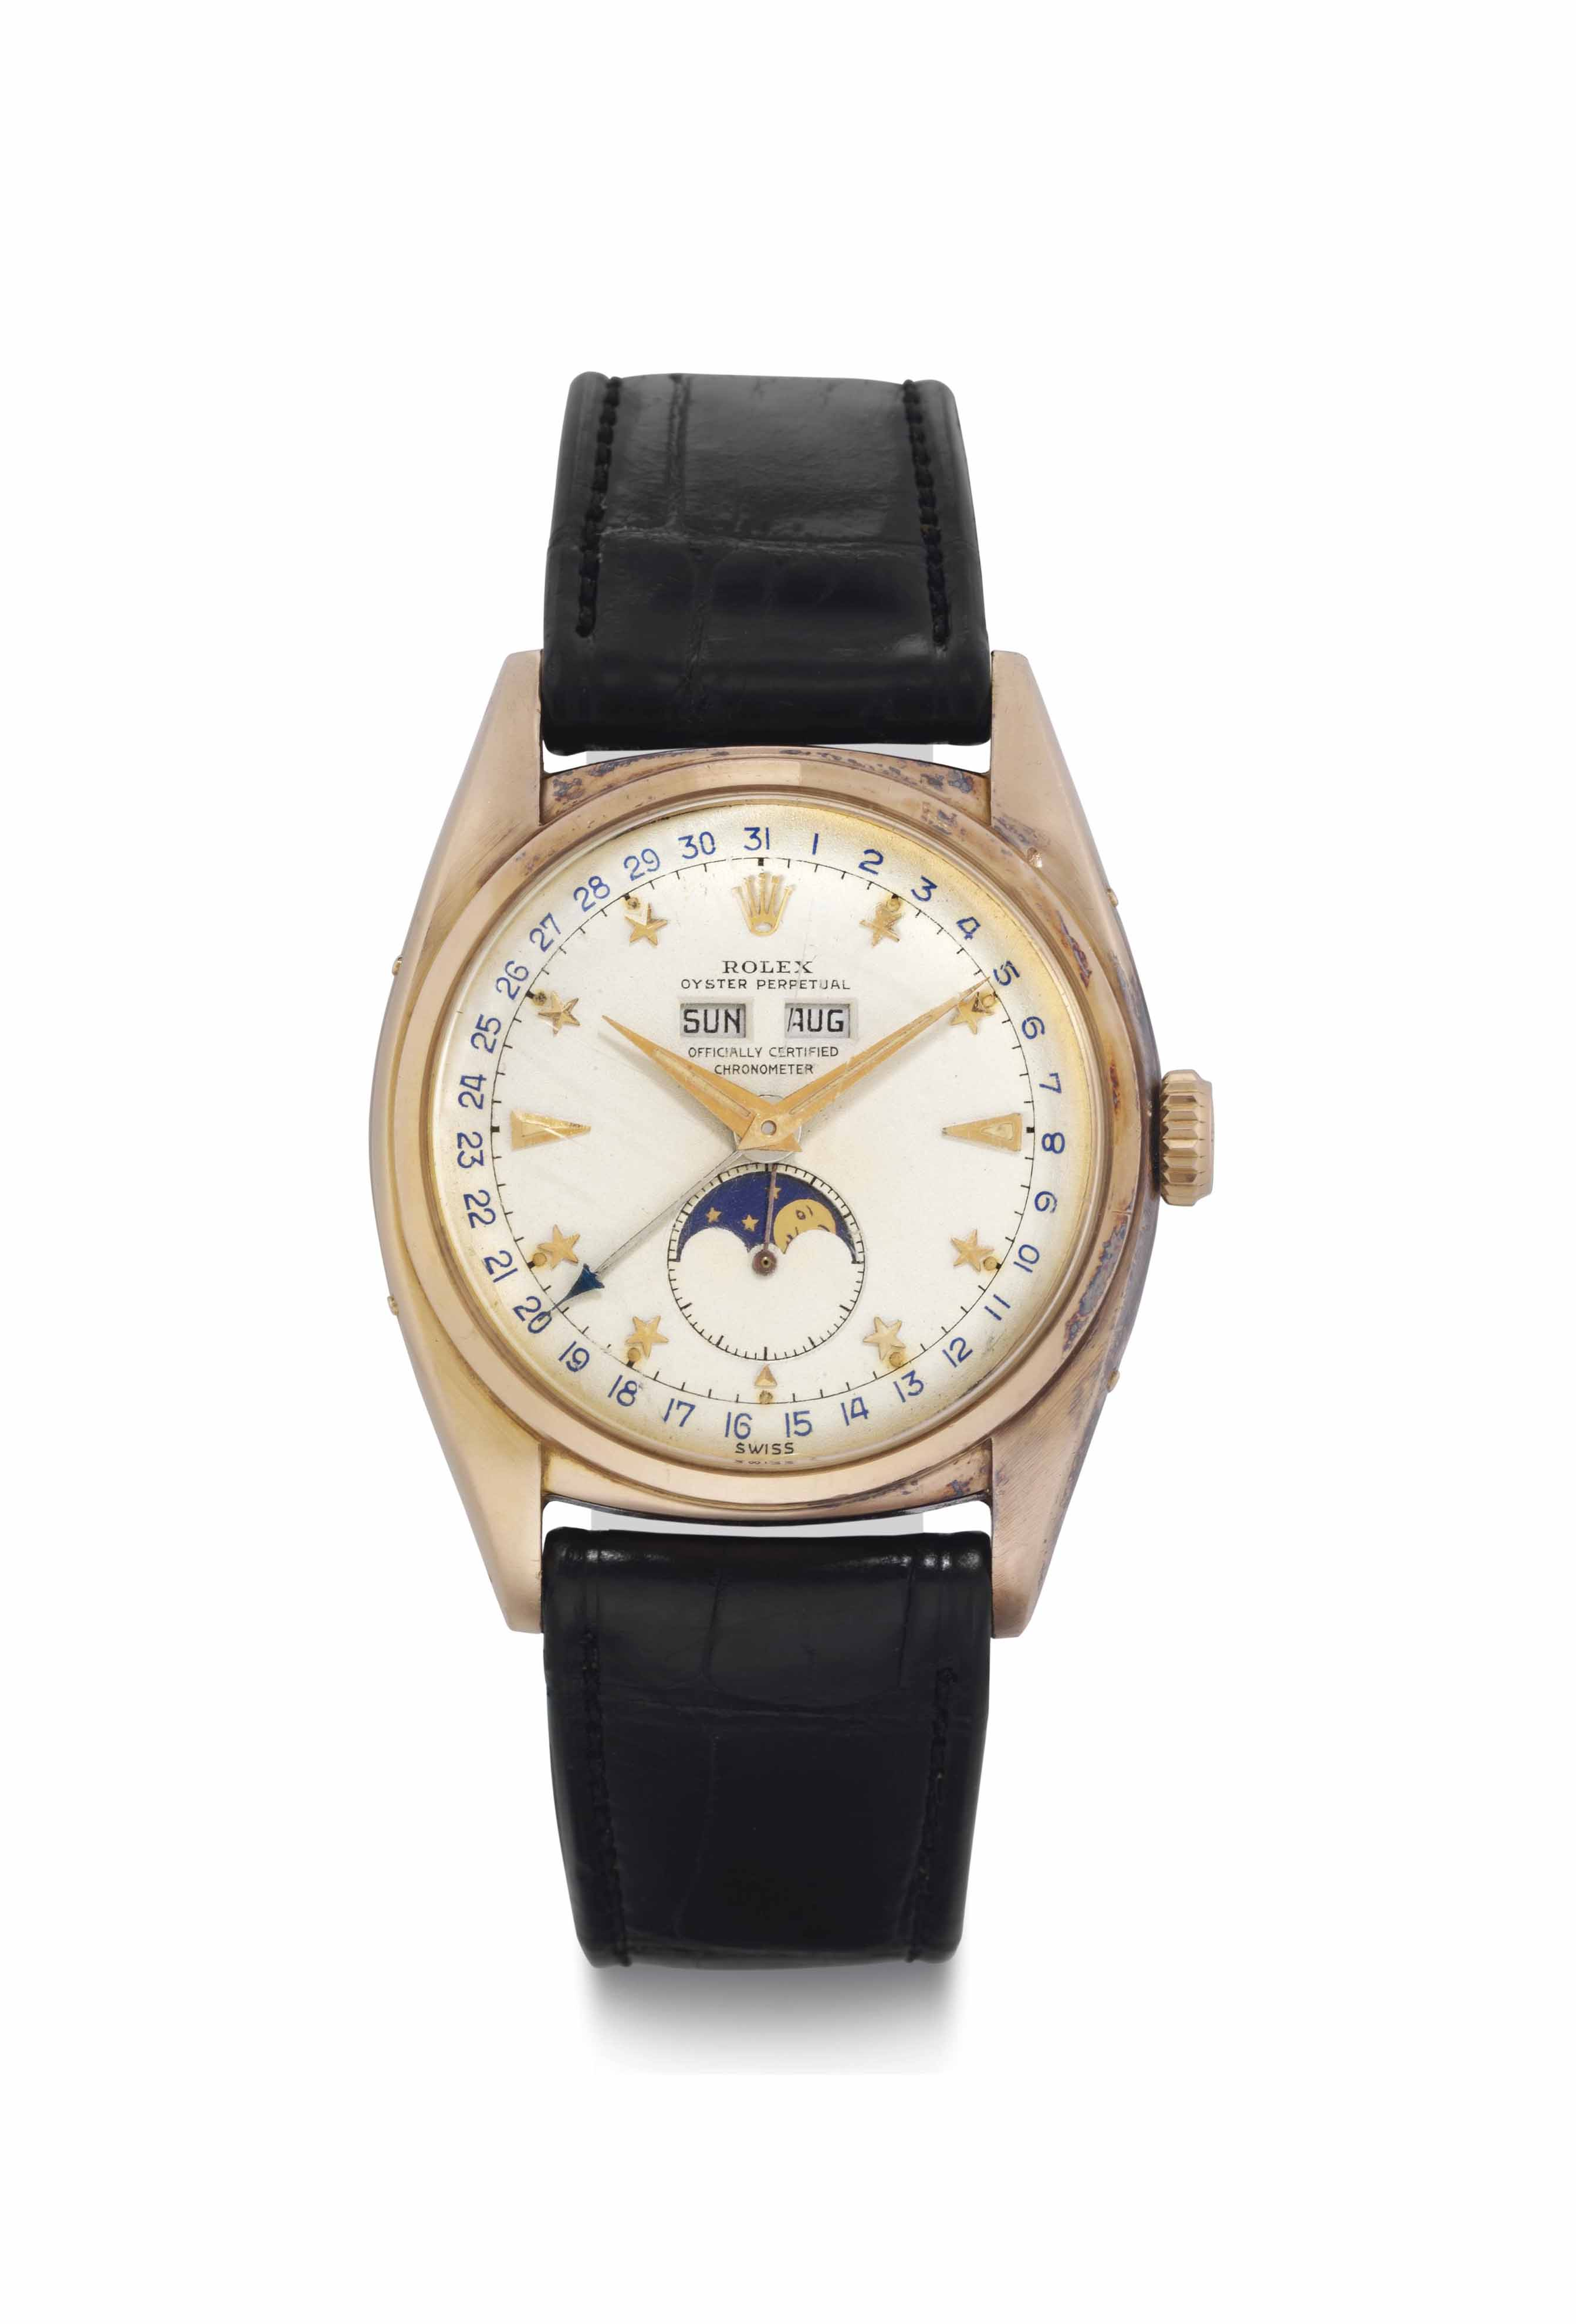 Rolex. A Very Fine and Extremely Rare 18k Pink Gold Automatic Triple Calendar Wristwatch with Star Dial and Moon Phases